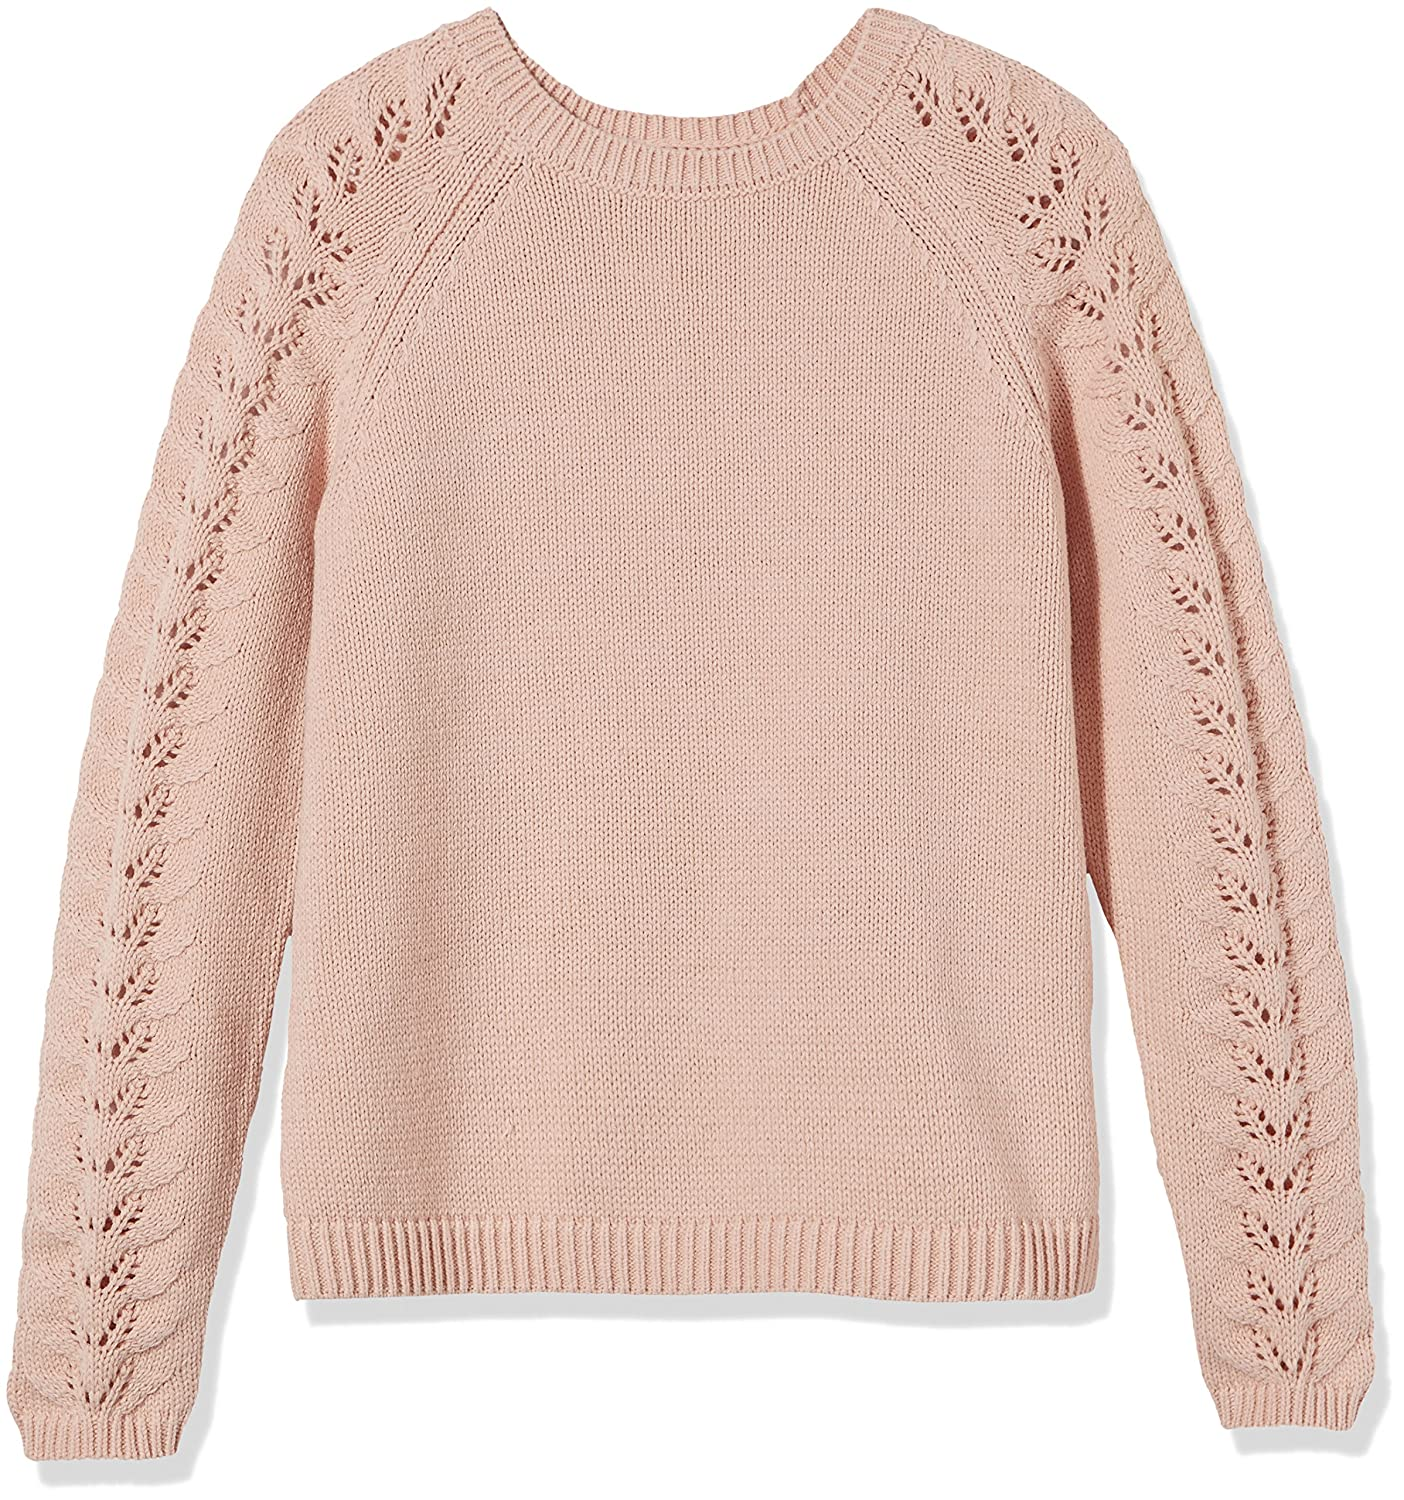 Kid Nation Girls Openwork Long Sleeve Round Neck Knit Sweater Vintage Style Pullover